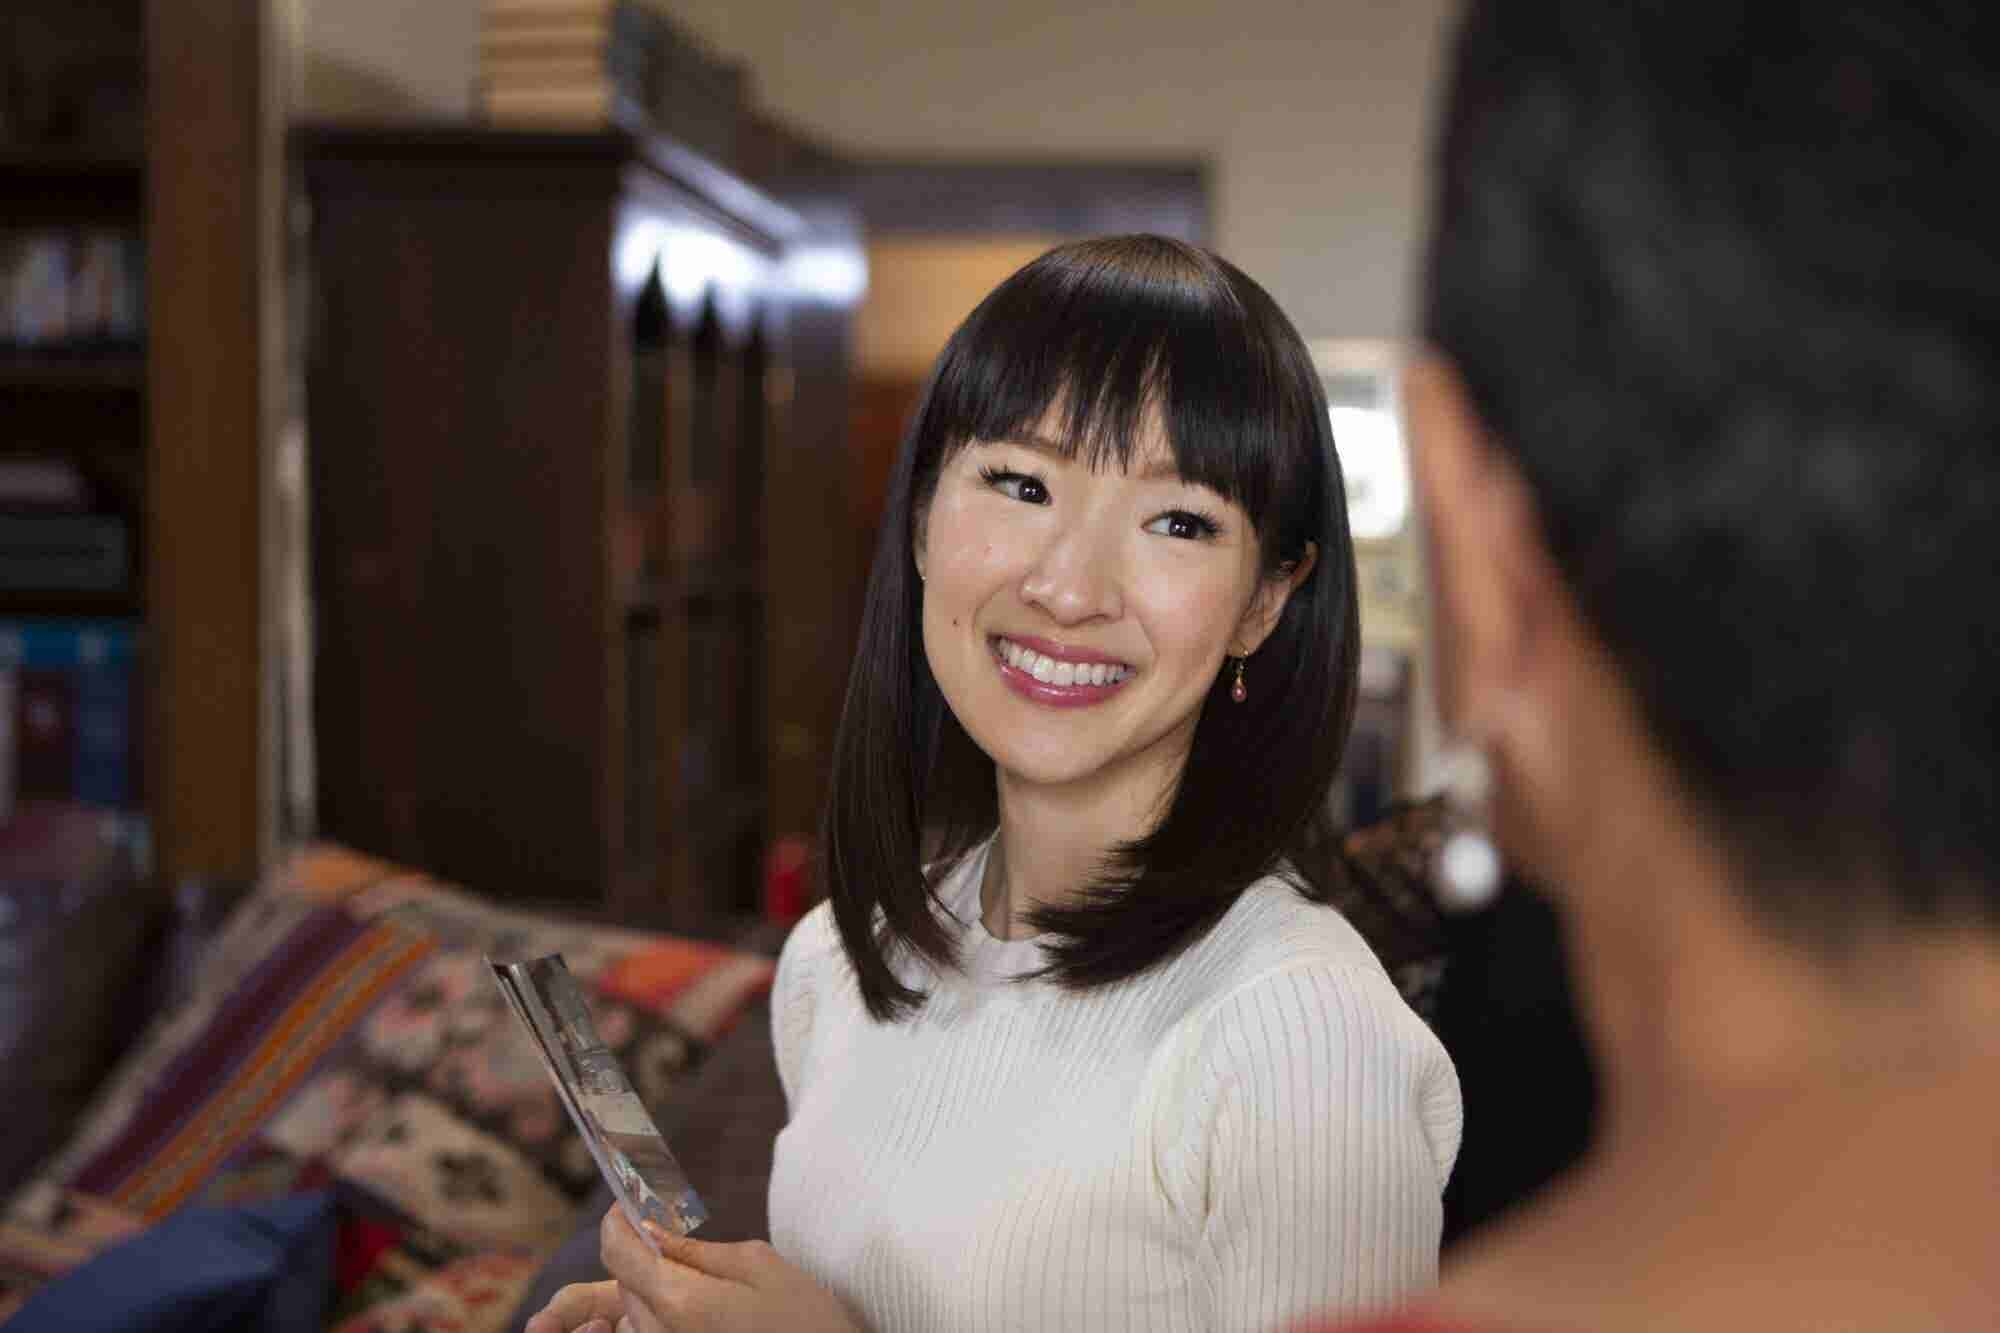 Exclusive: Marie Kondo's Advice for People, Like Steve Jobs, Who Swear by Messy Desks